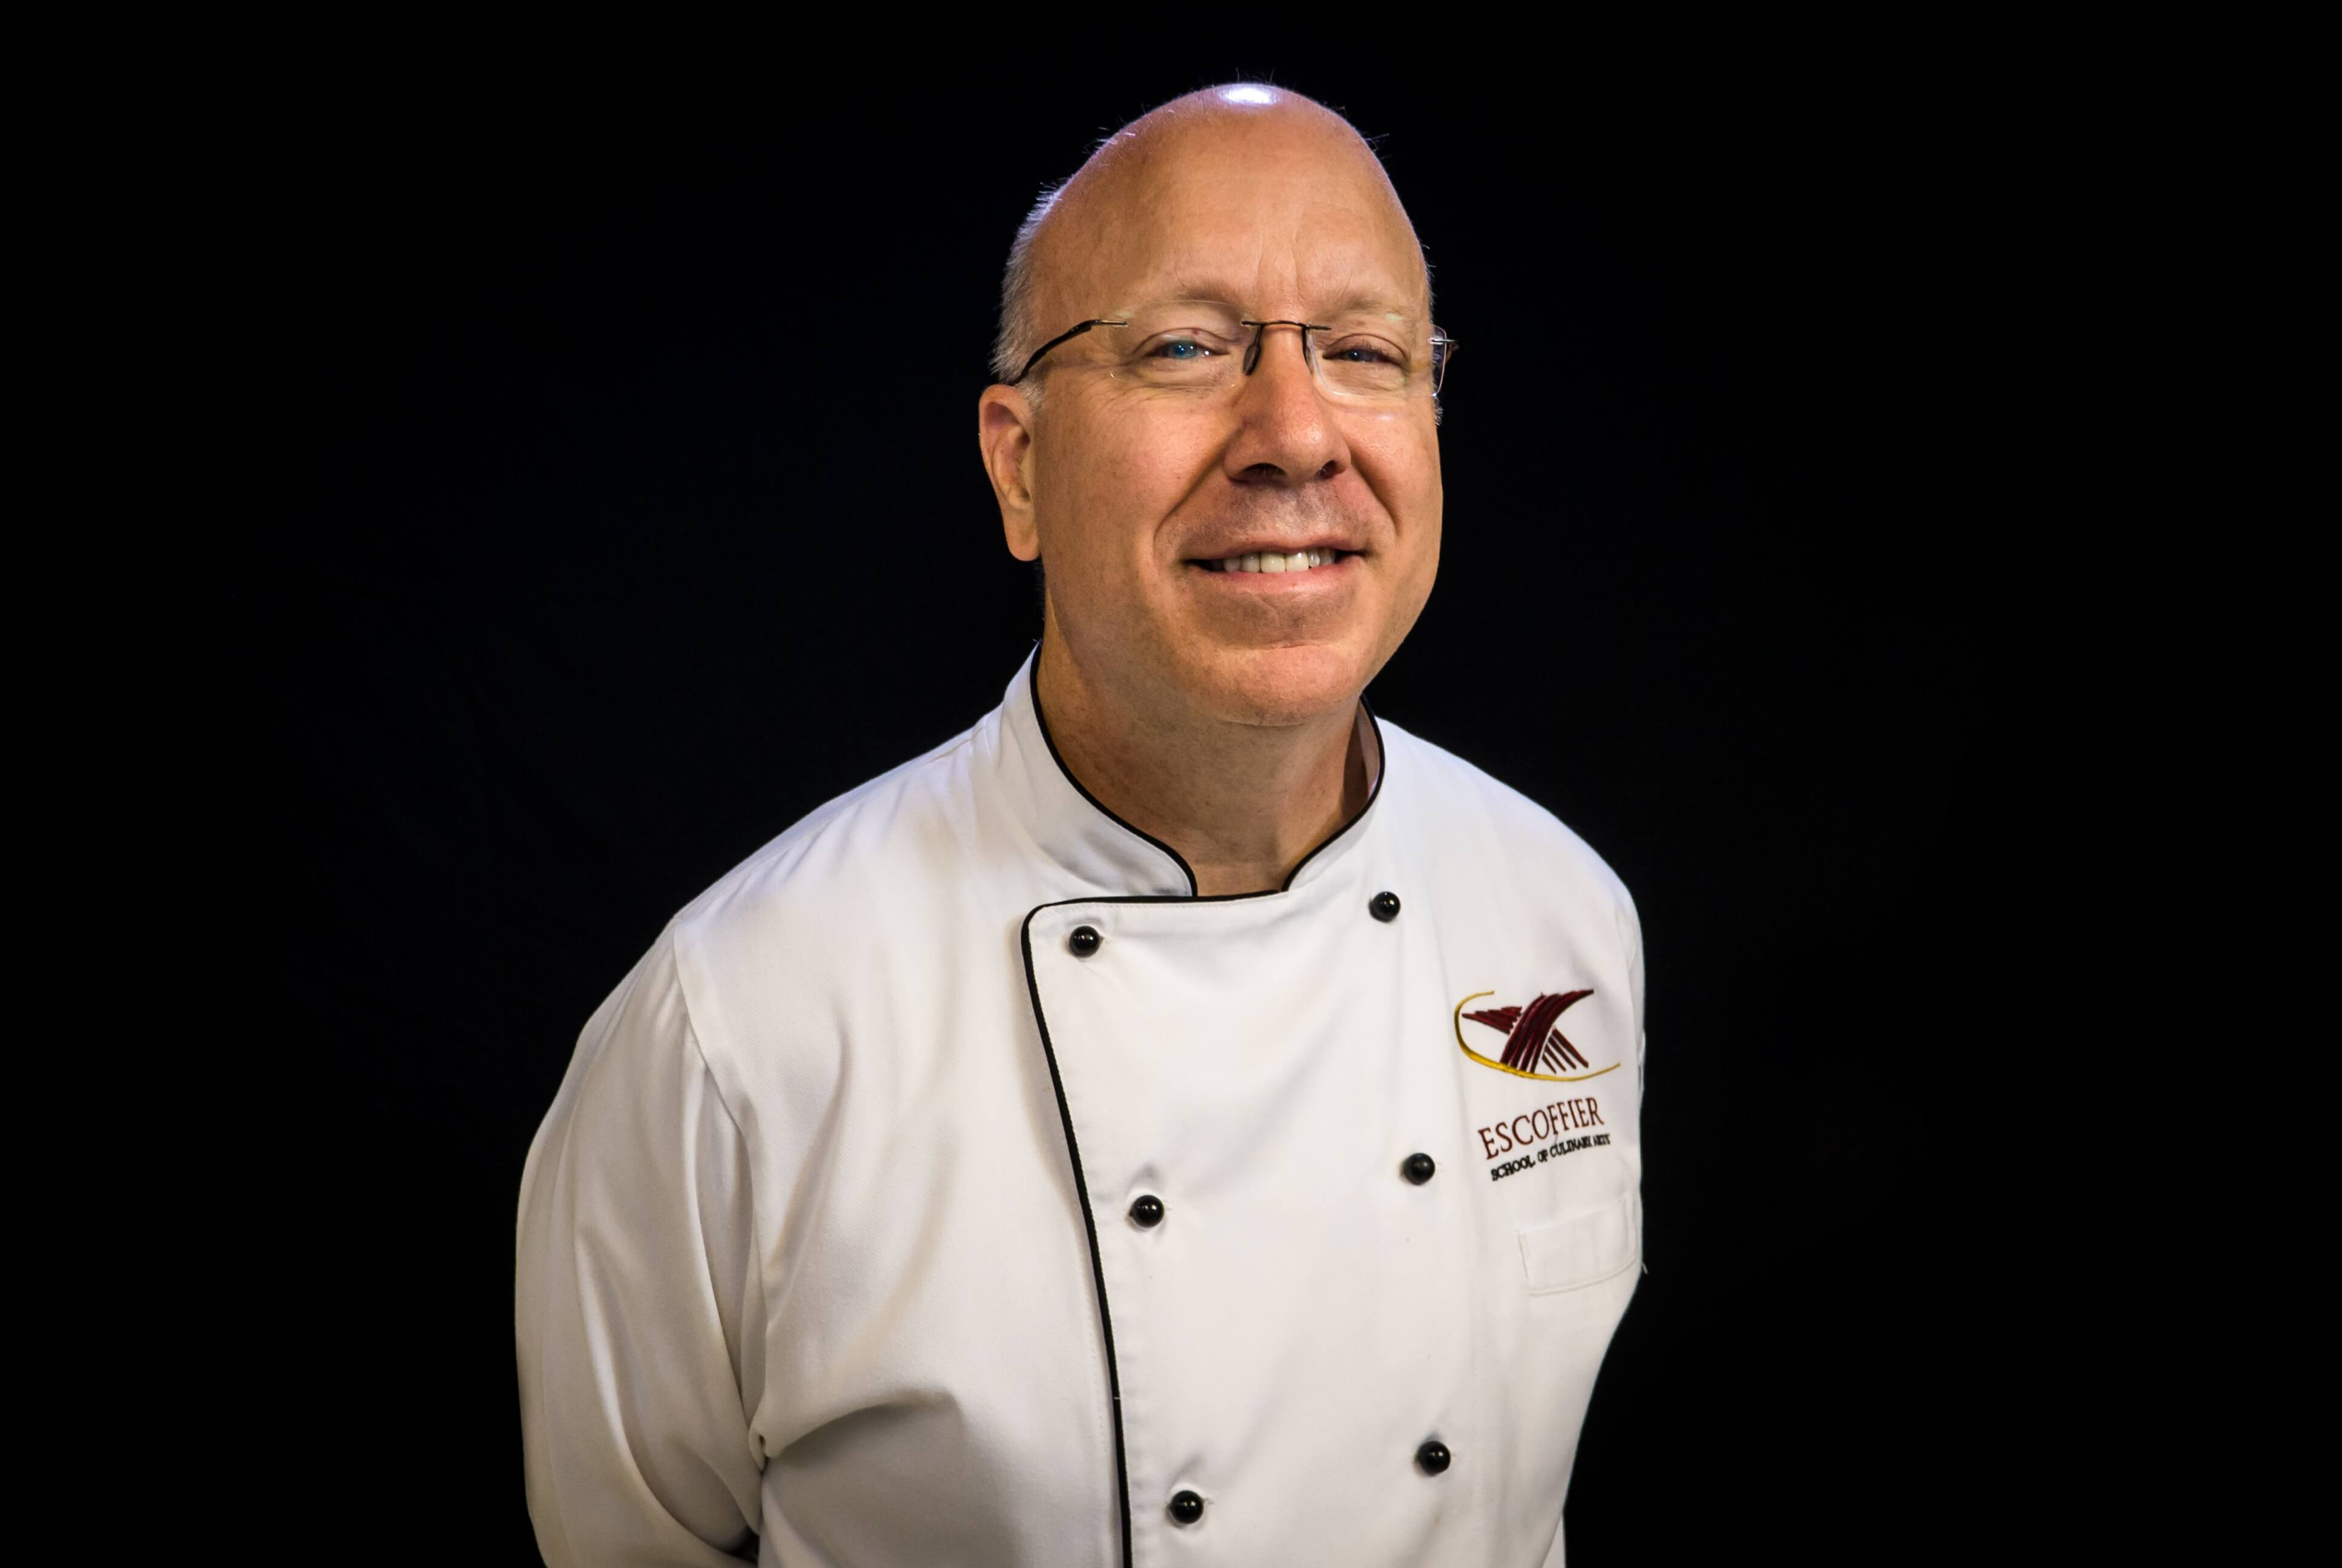 Meet Your Chef Instructor: Chef Tom Beckman